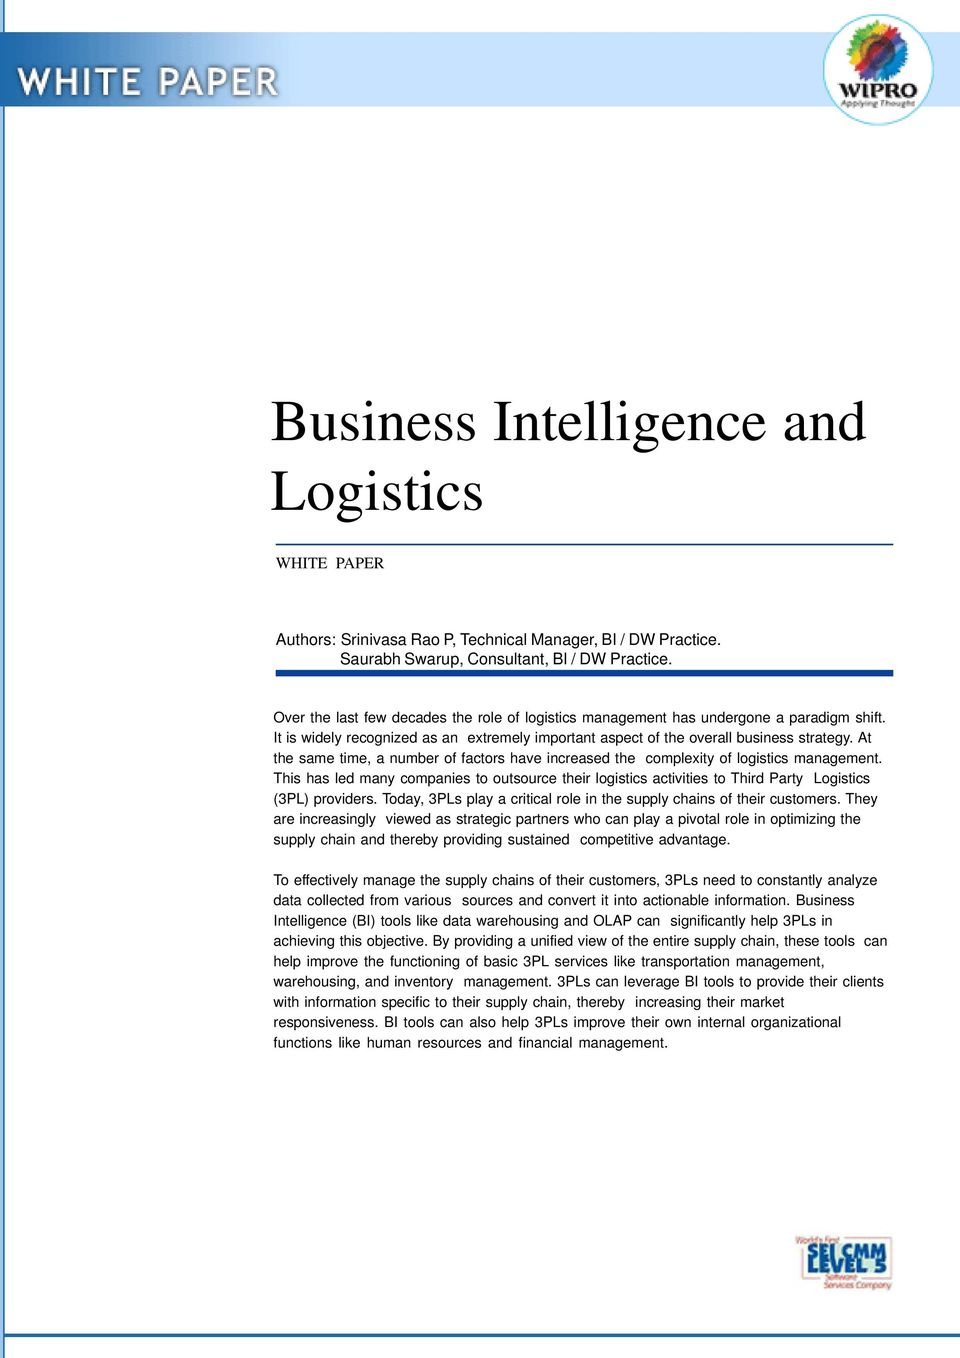 At the same time, a umber of factors have icreased the complexity of logistics maagemet. This has led may compaies to outsource their logistics activities to Third Party Logistics (3PL) providers.